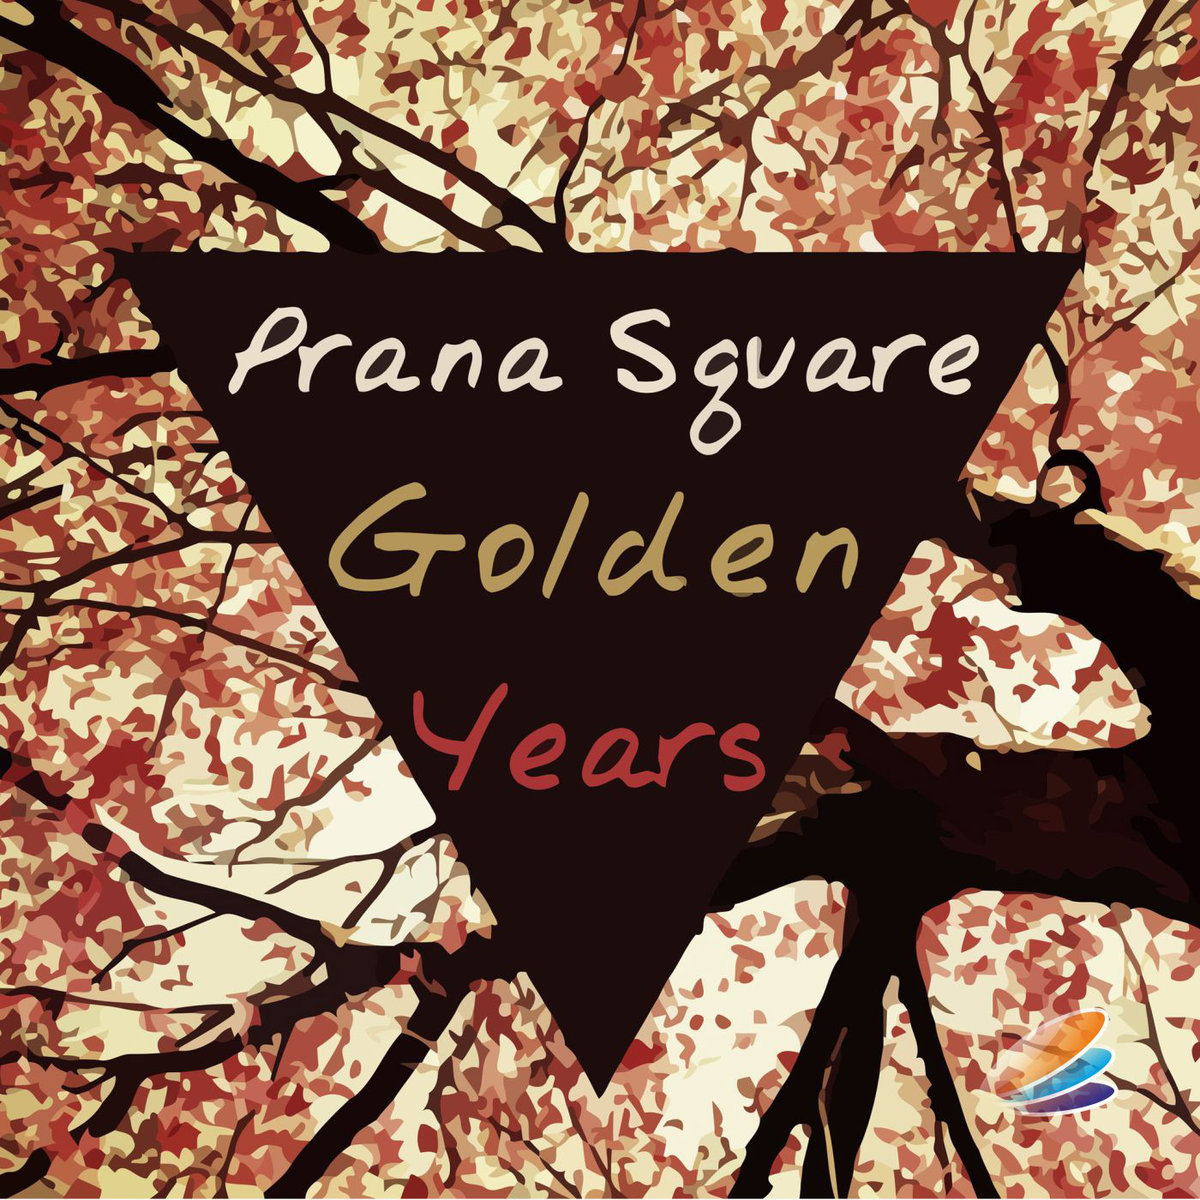 Prana Square - Golden Years